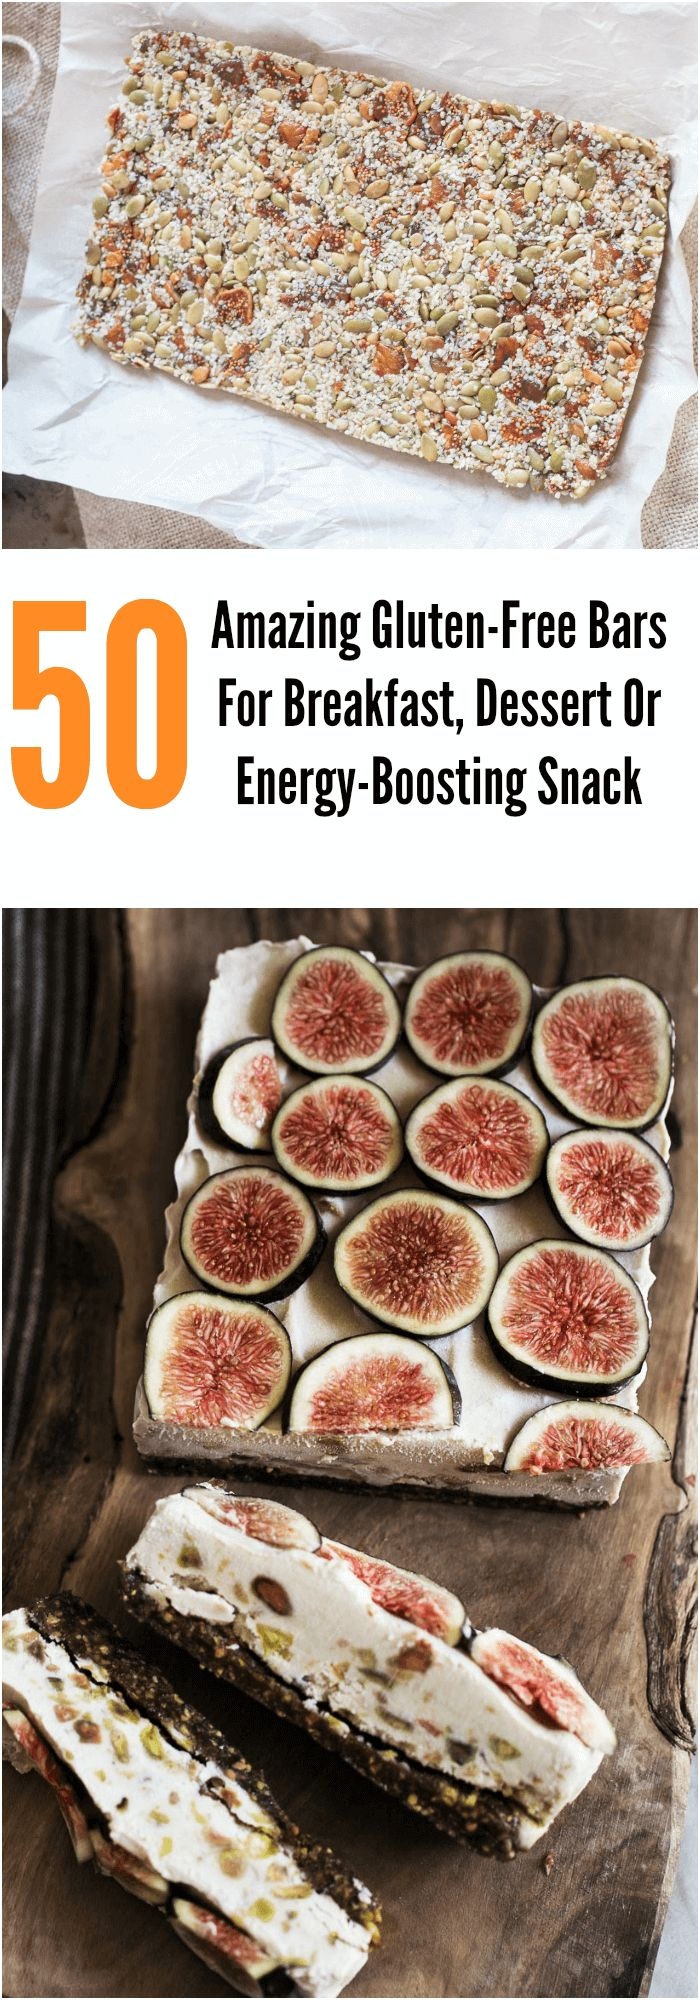 50 Amazing Gluten-Free Bars For Breakfast, Dessert Or Energy-Boosting Snack #glutenfree #breakfast #bars #desserts #recipes